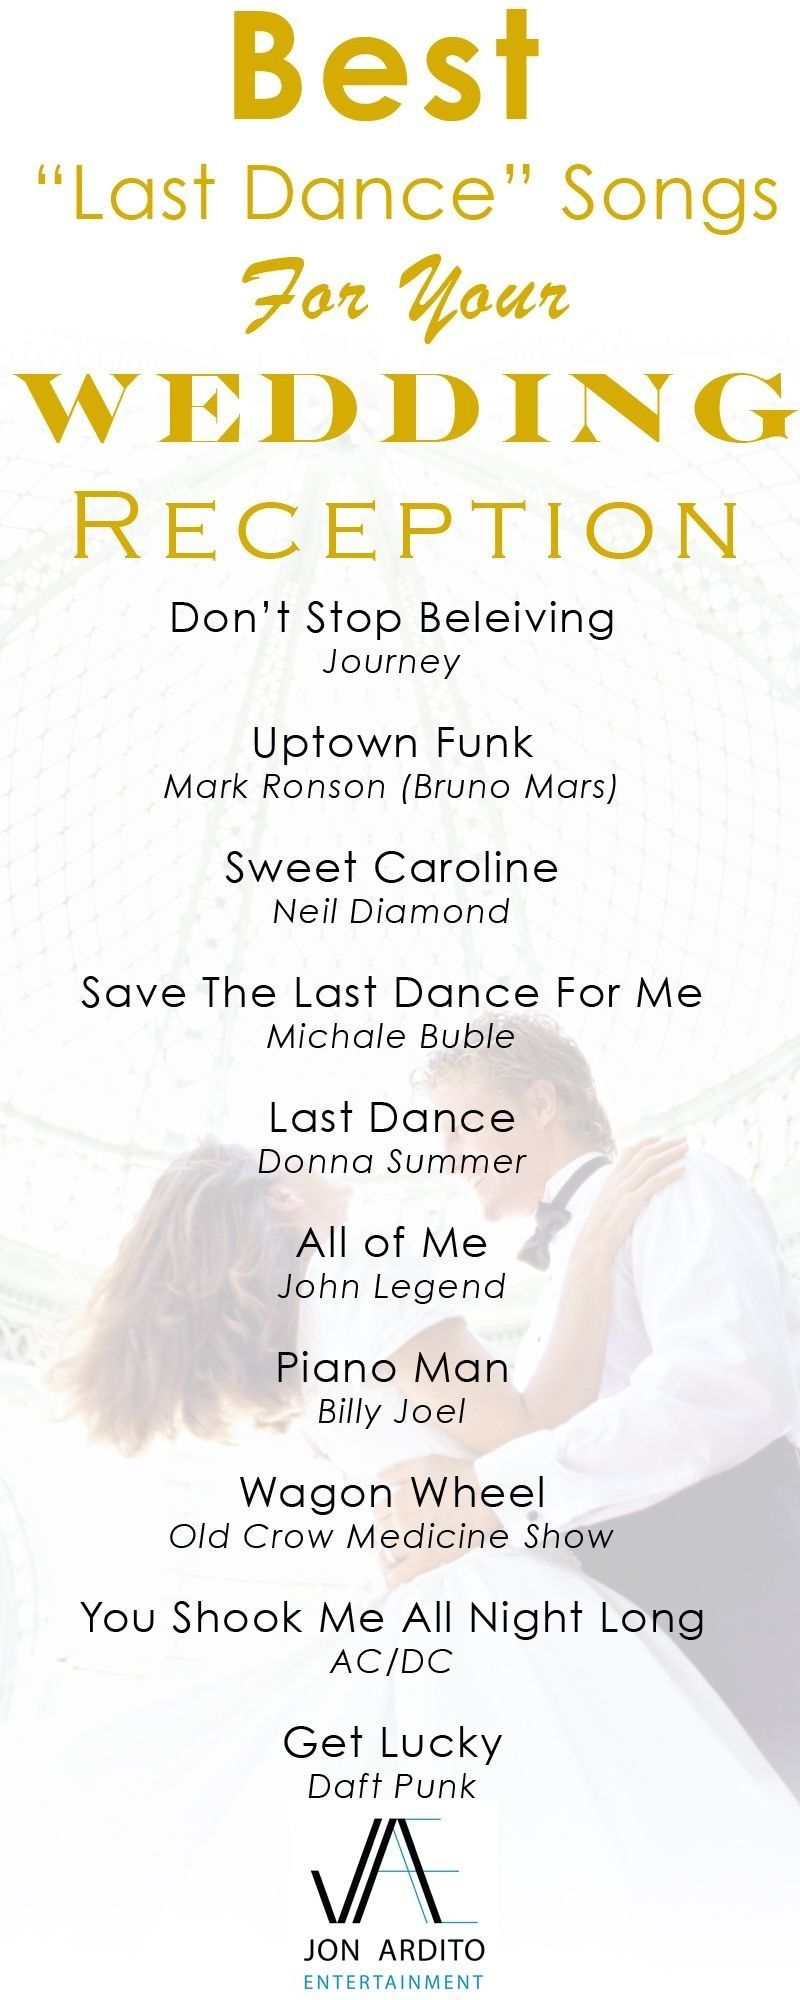 Last Dance Songs Wedding Reception Music Wedding Songs Reception Wedding Songs